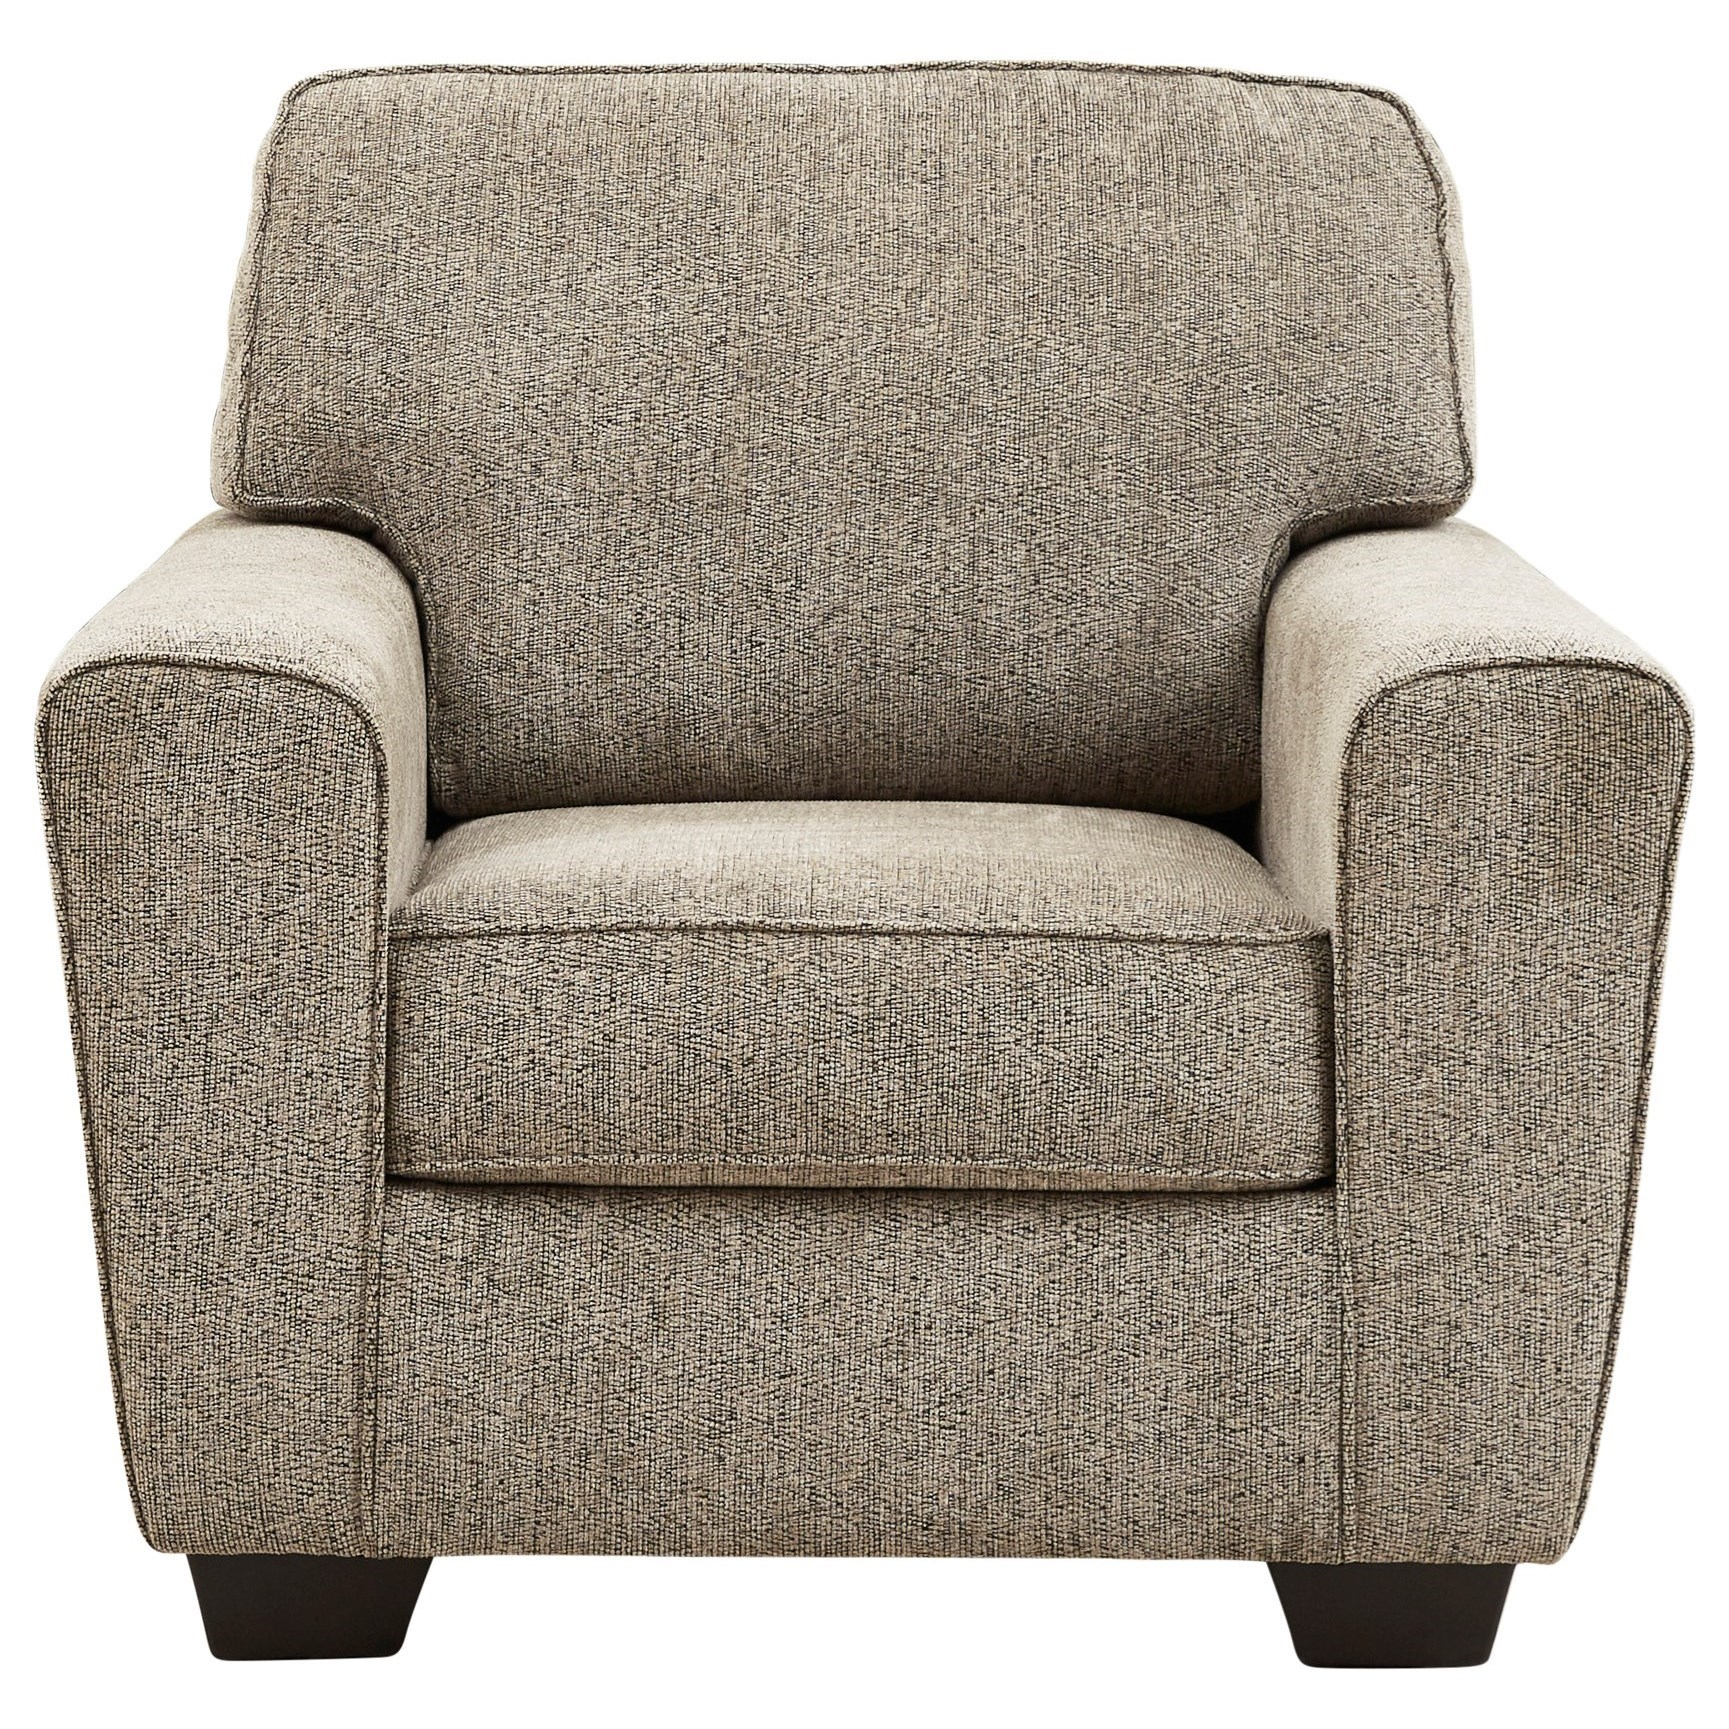 McCluer Chair by Benchcraft at Walker's Furniture